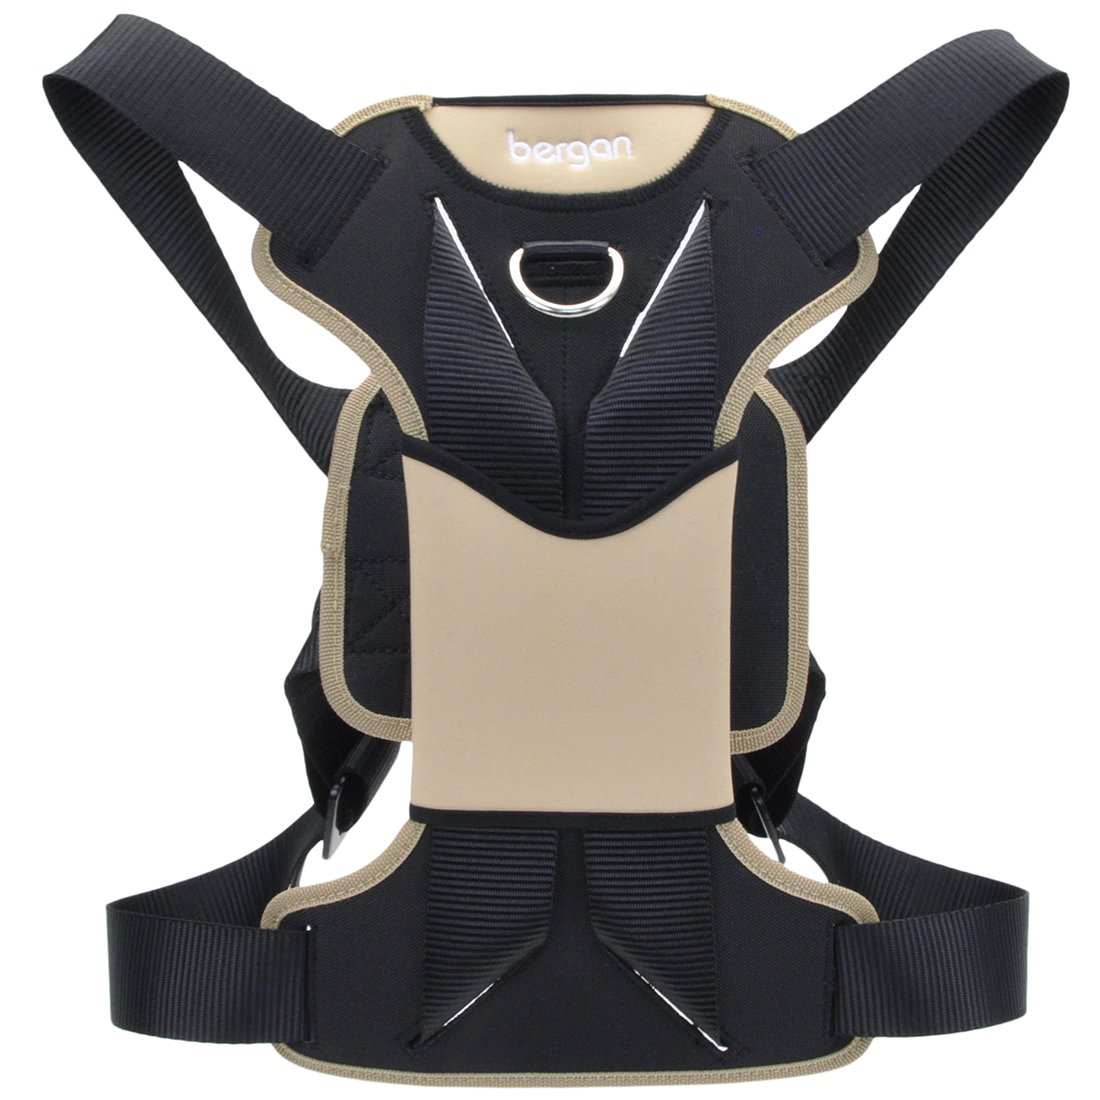 Bergan Auto Dog Harness Large-tan/black 50-80lbs